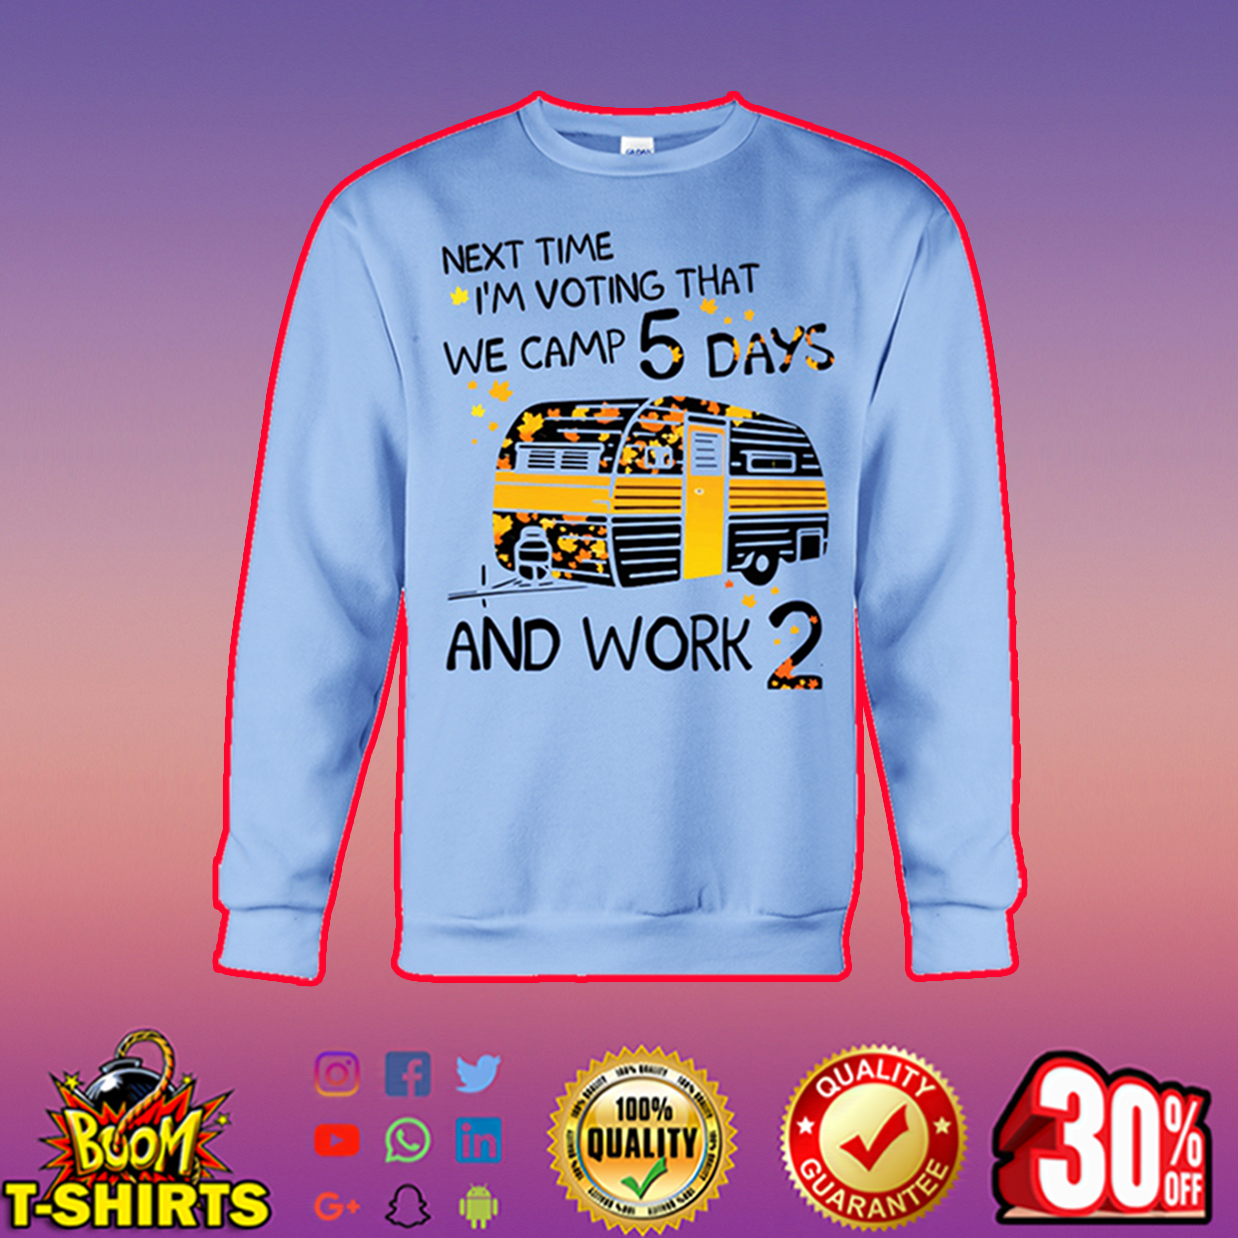 Next time I'm voting that we camp 5 days and work 2 sweatshirt